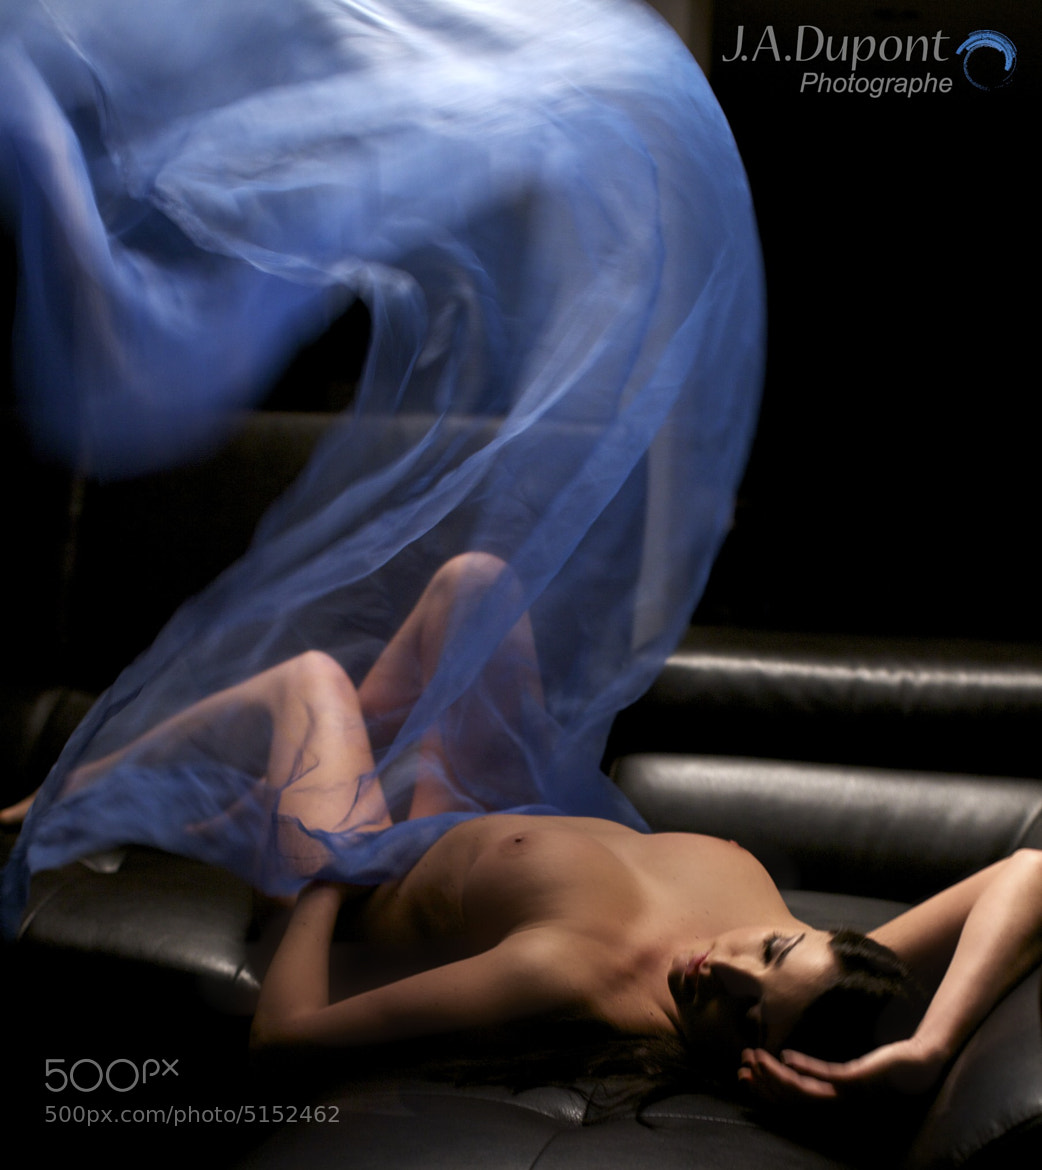 Photograph Blue Smoke by Jacques-Andre Dupont on 500px